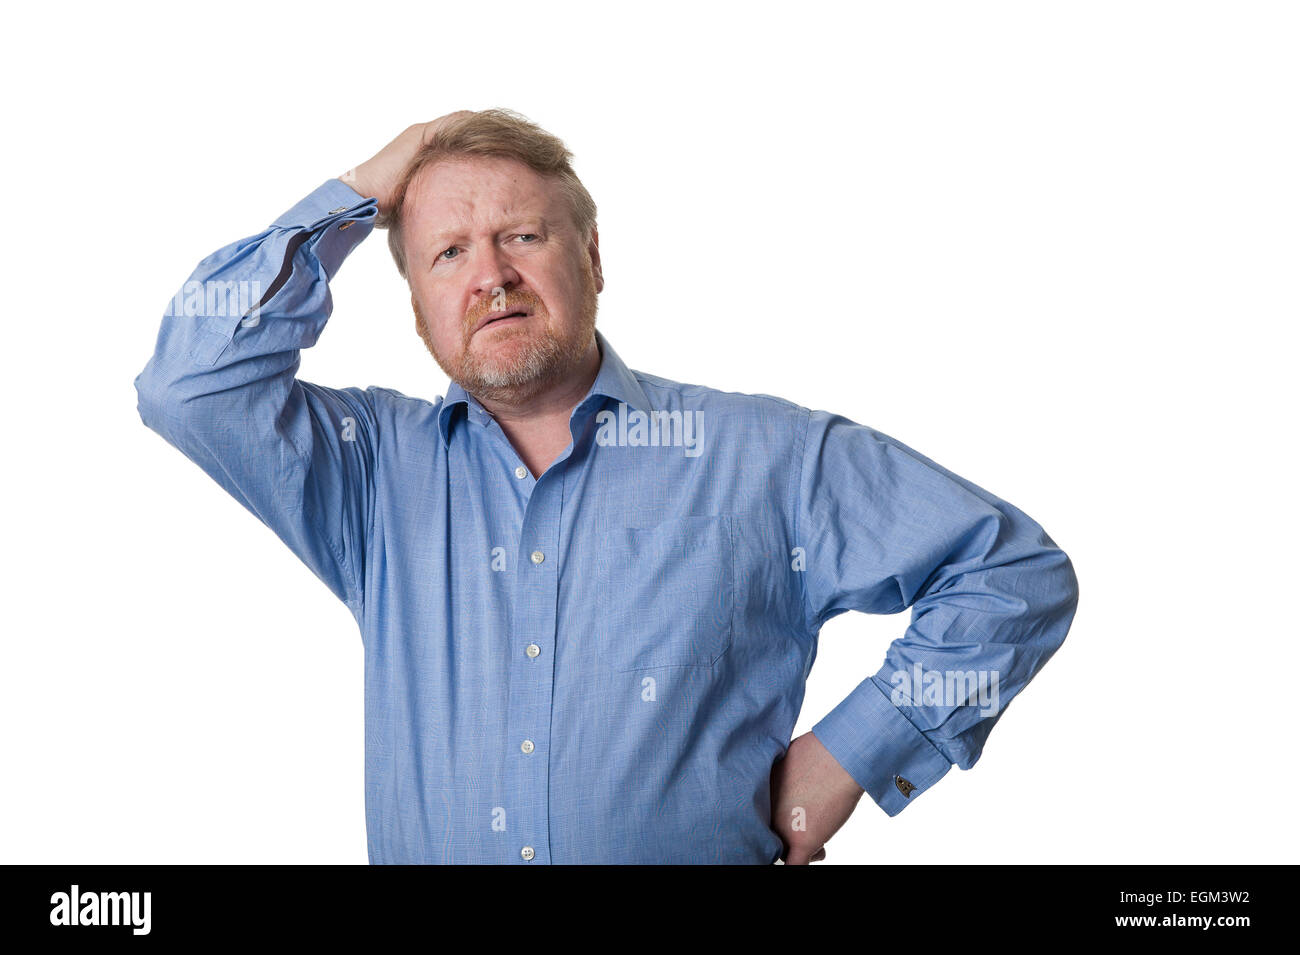 Friendly middle aged bearded guy in blue shirt - on white - Stock Image